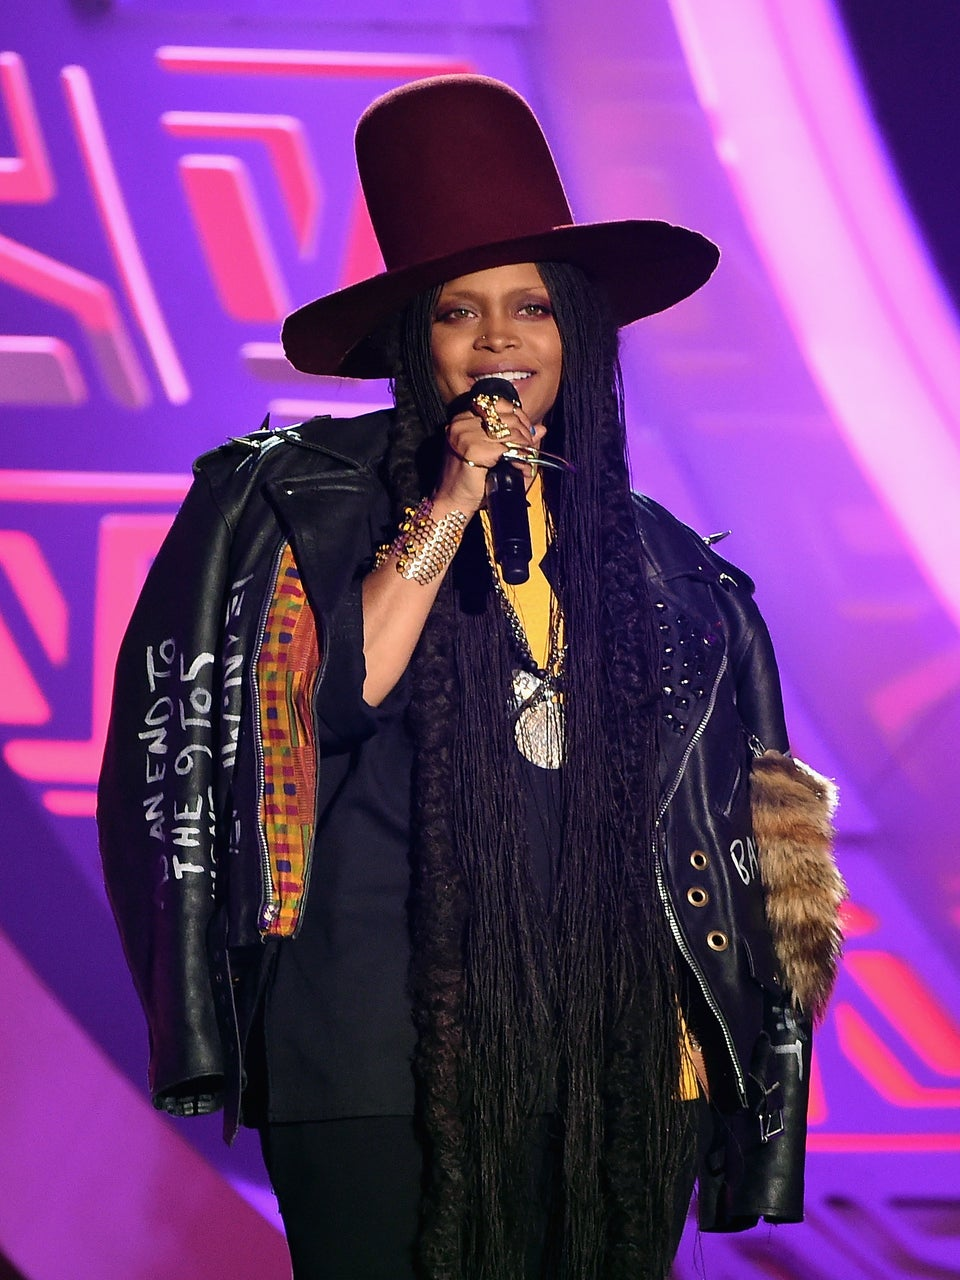 Erykah Badu Gets Cozy With Boyfriend Carl Jones During ComicCon